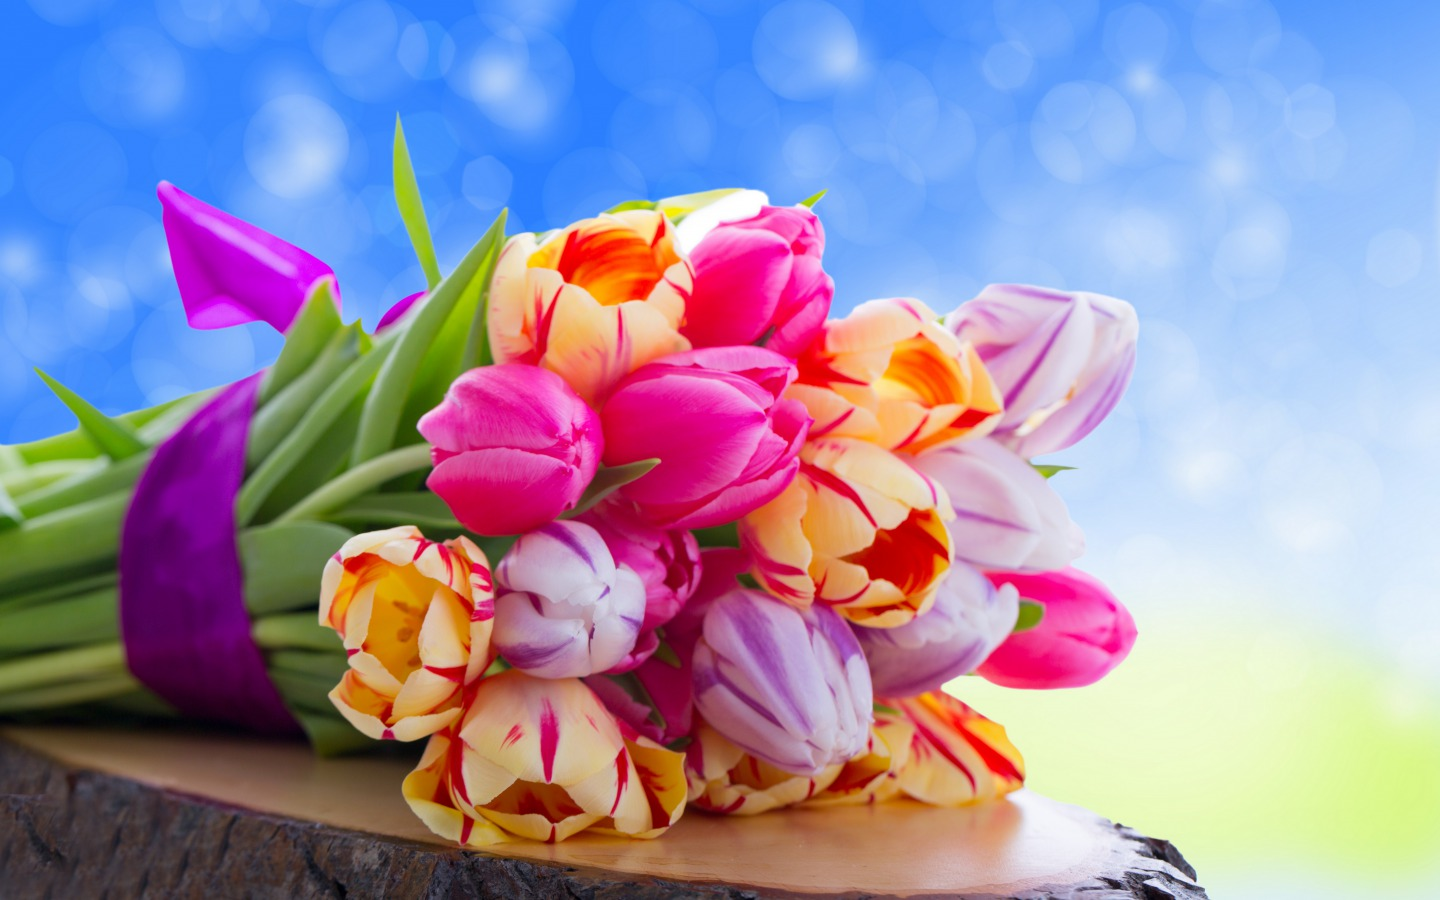 Flowers images tulips wallpaper photos 34015251 for Pics of colourful roses